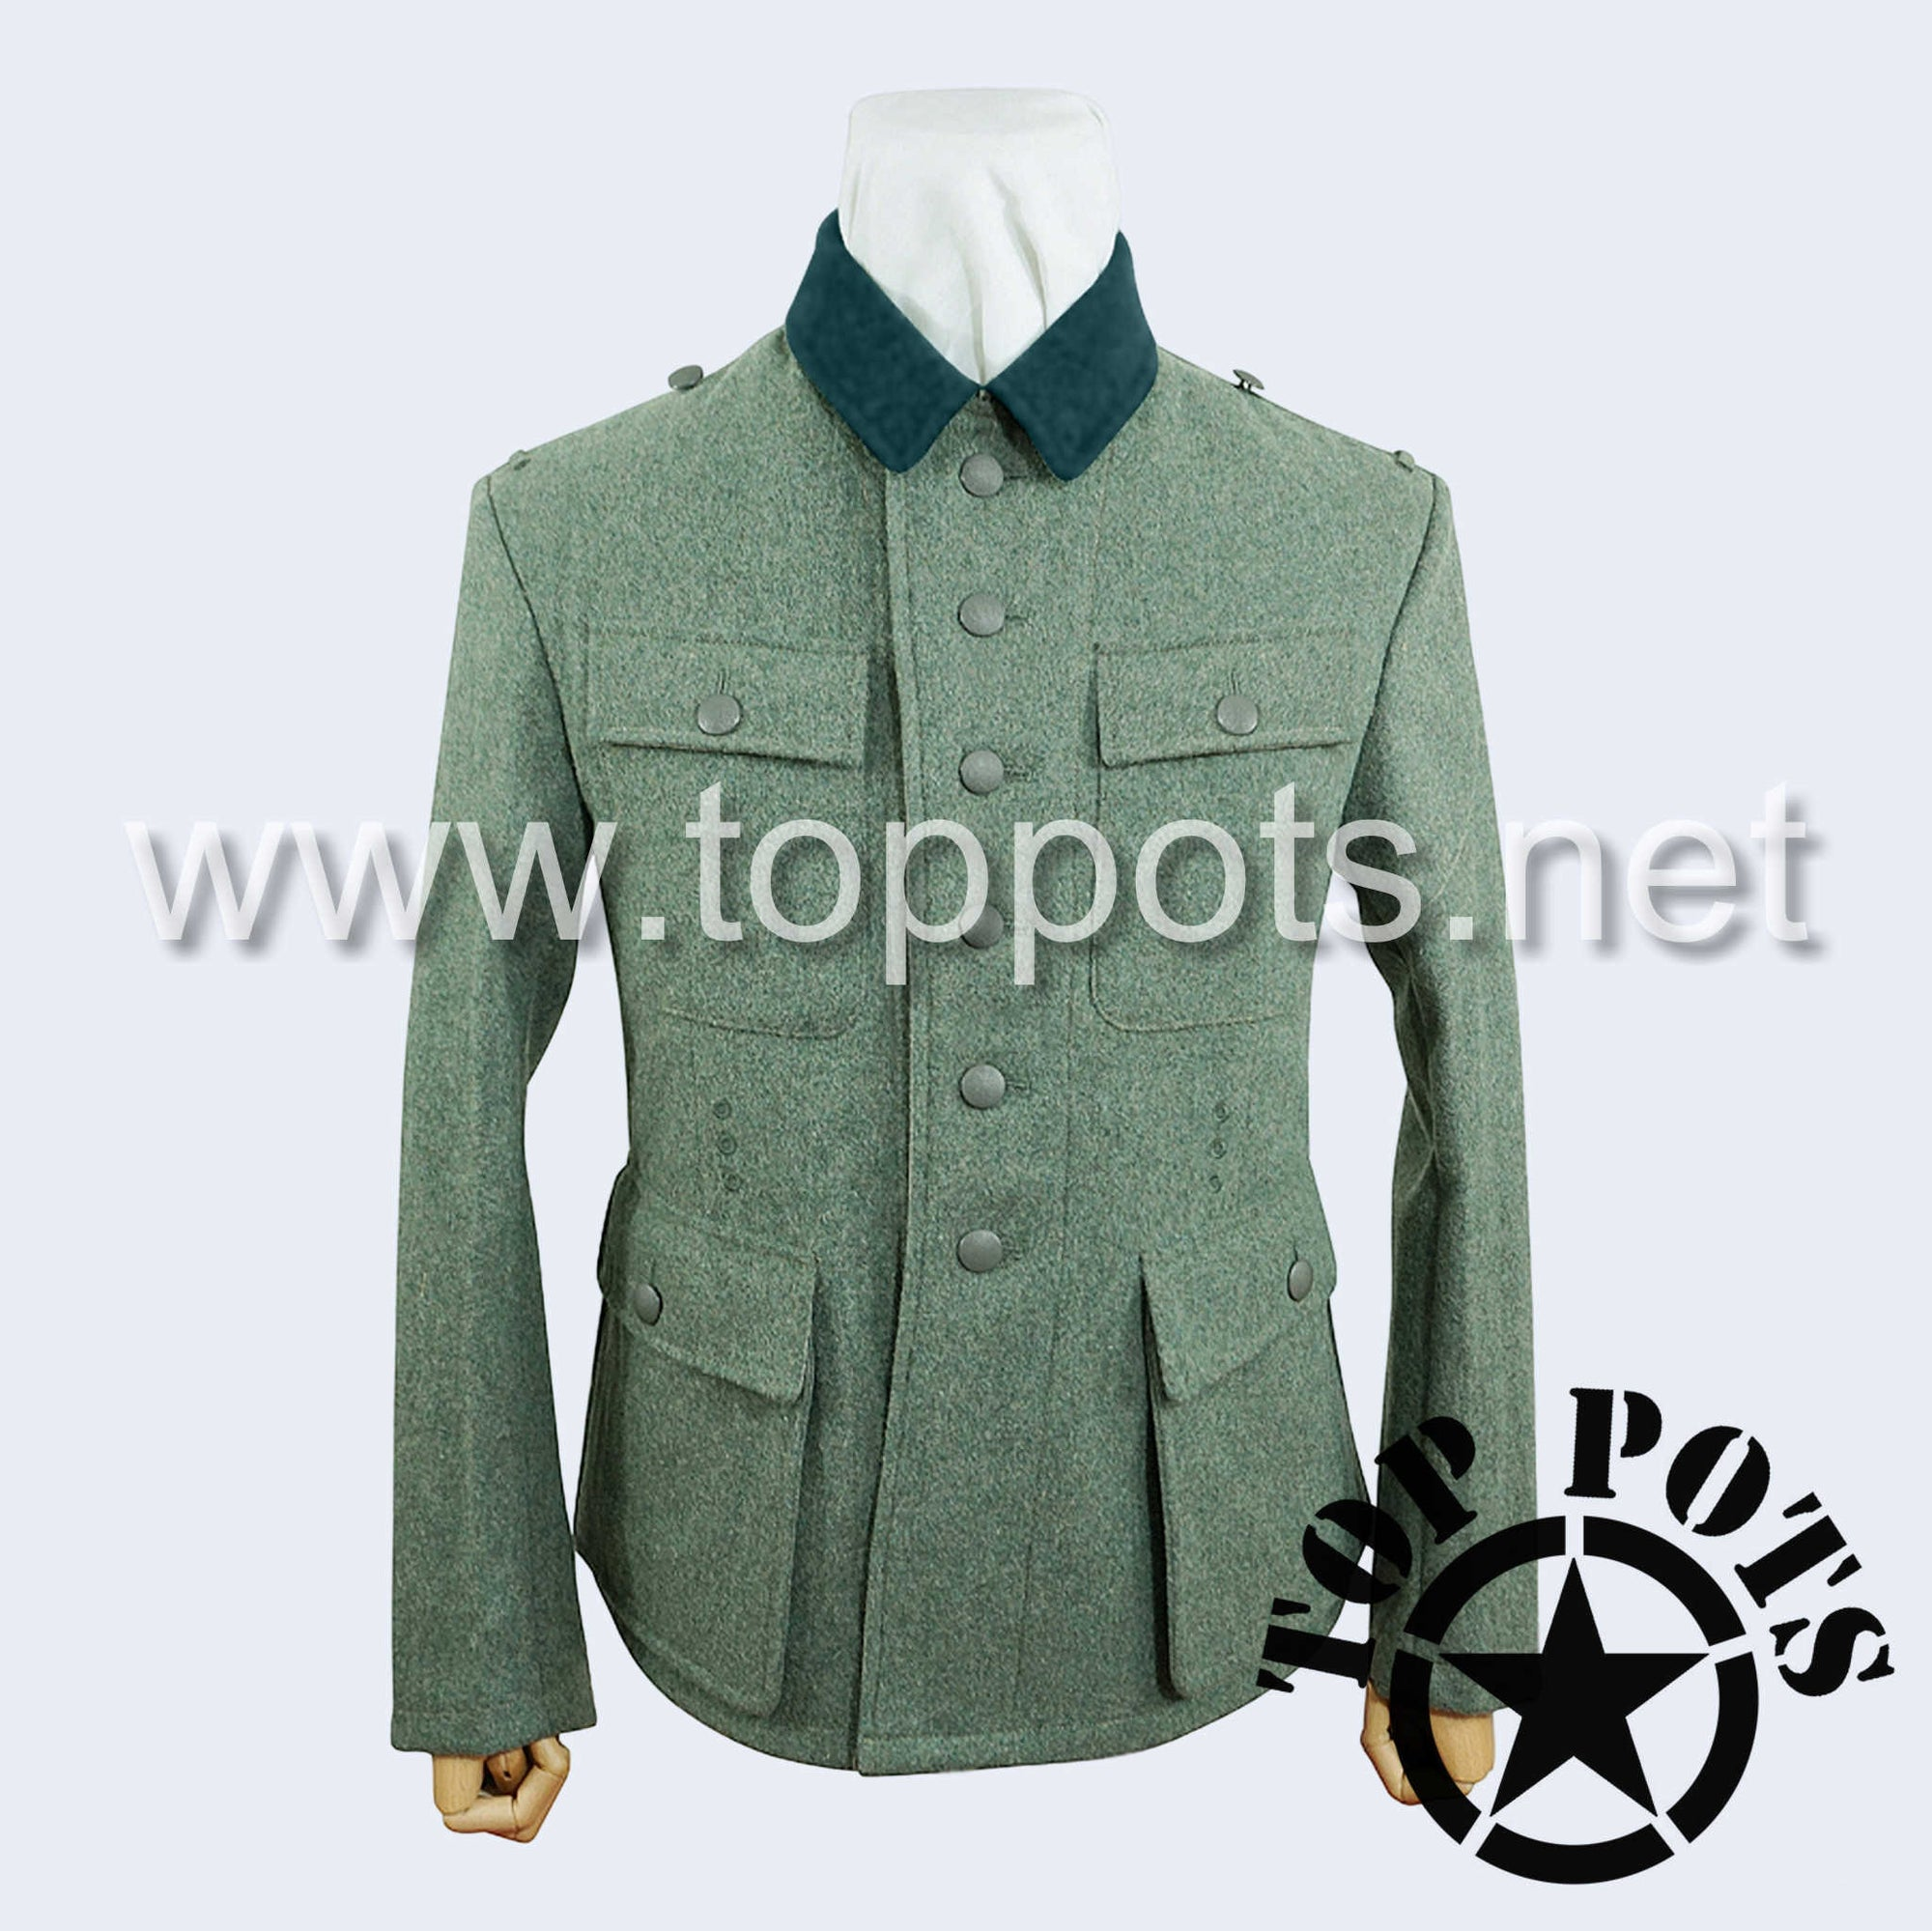 WWII German Army M1943 Heer Wehrmacht Enlisted Field Grey Wool Uniform Jacket - 6 Button Tunic (Modified Bottle Green Collar)